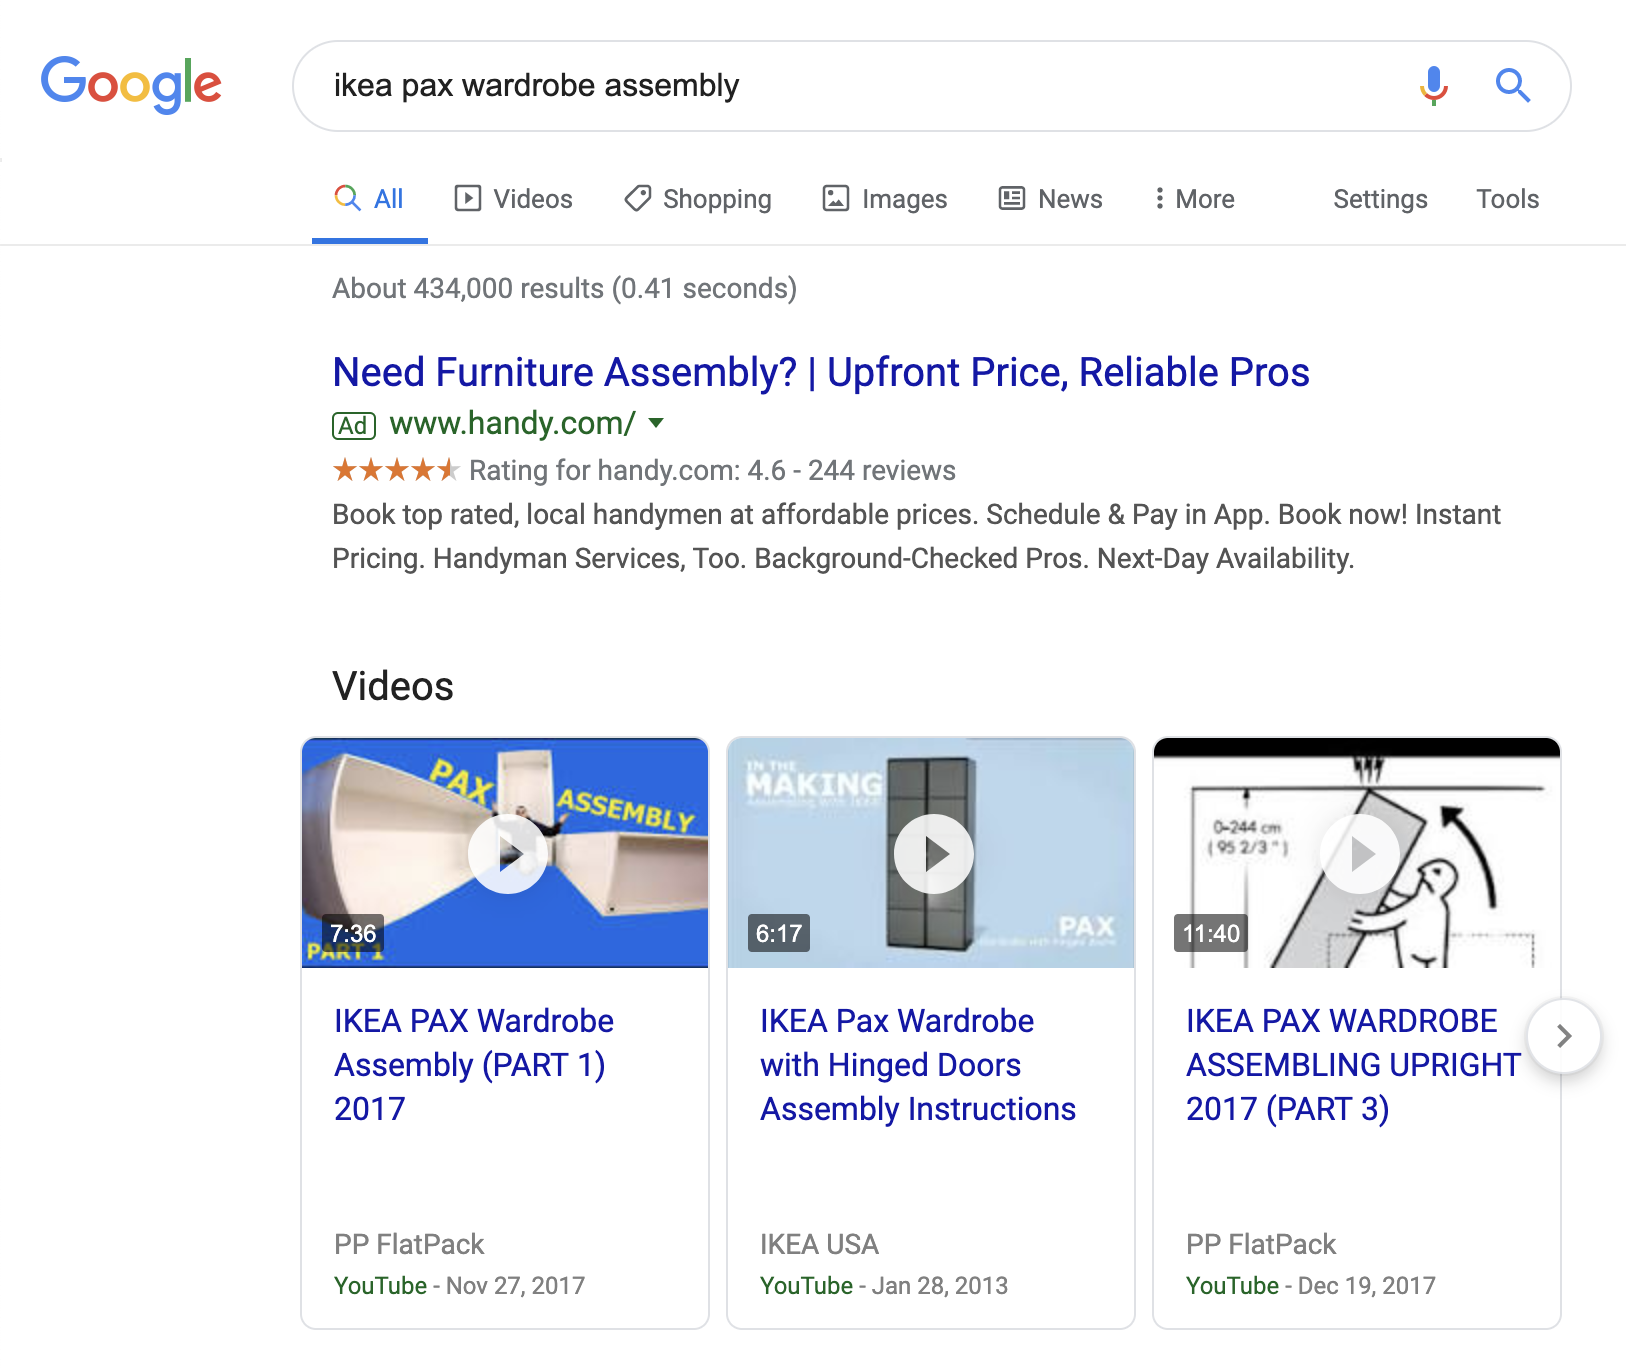 SERP for ikea pax wardrobe assembly query